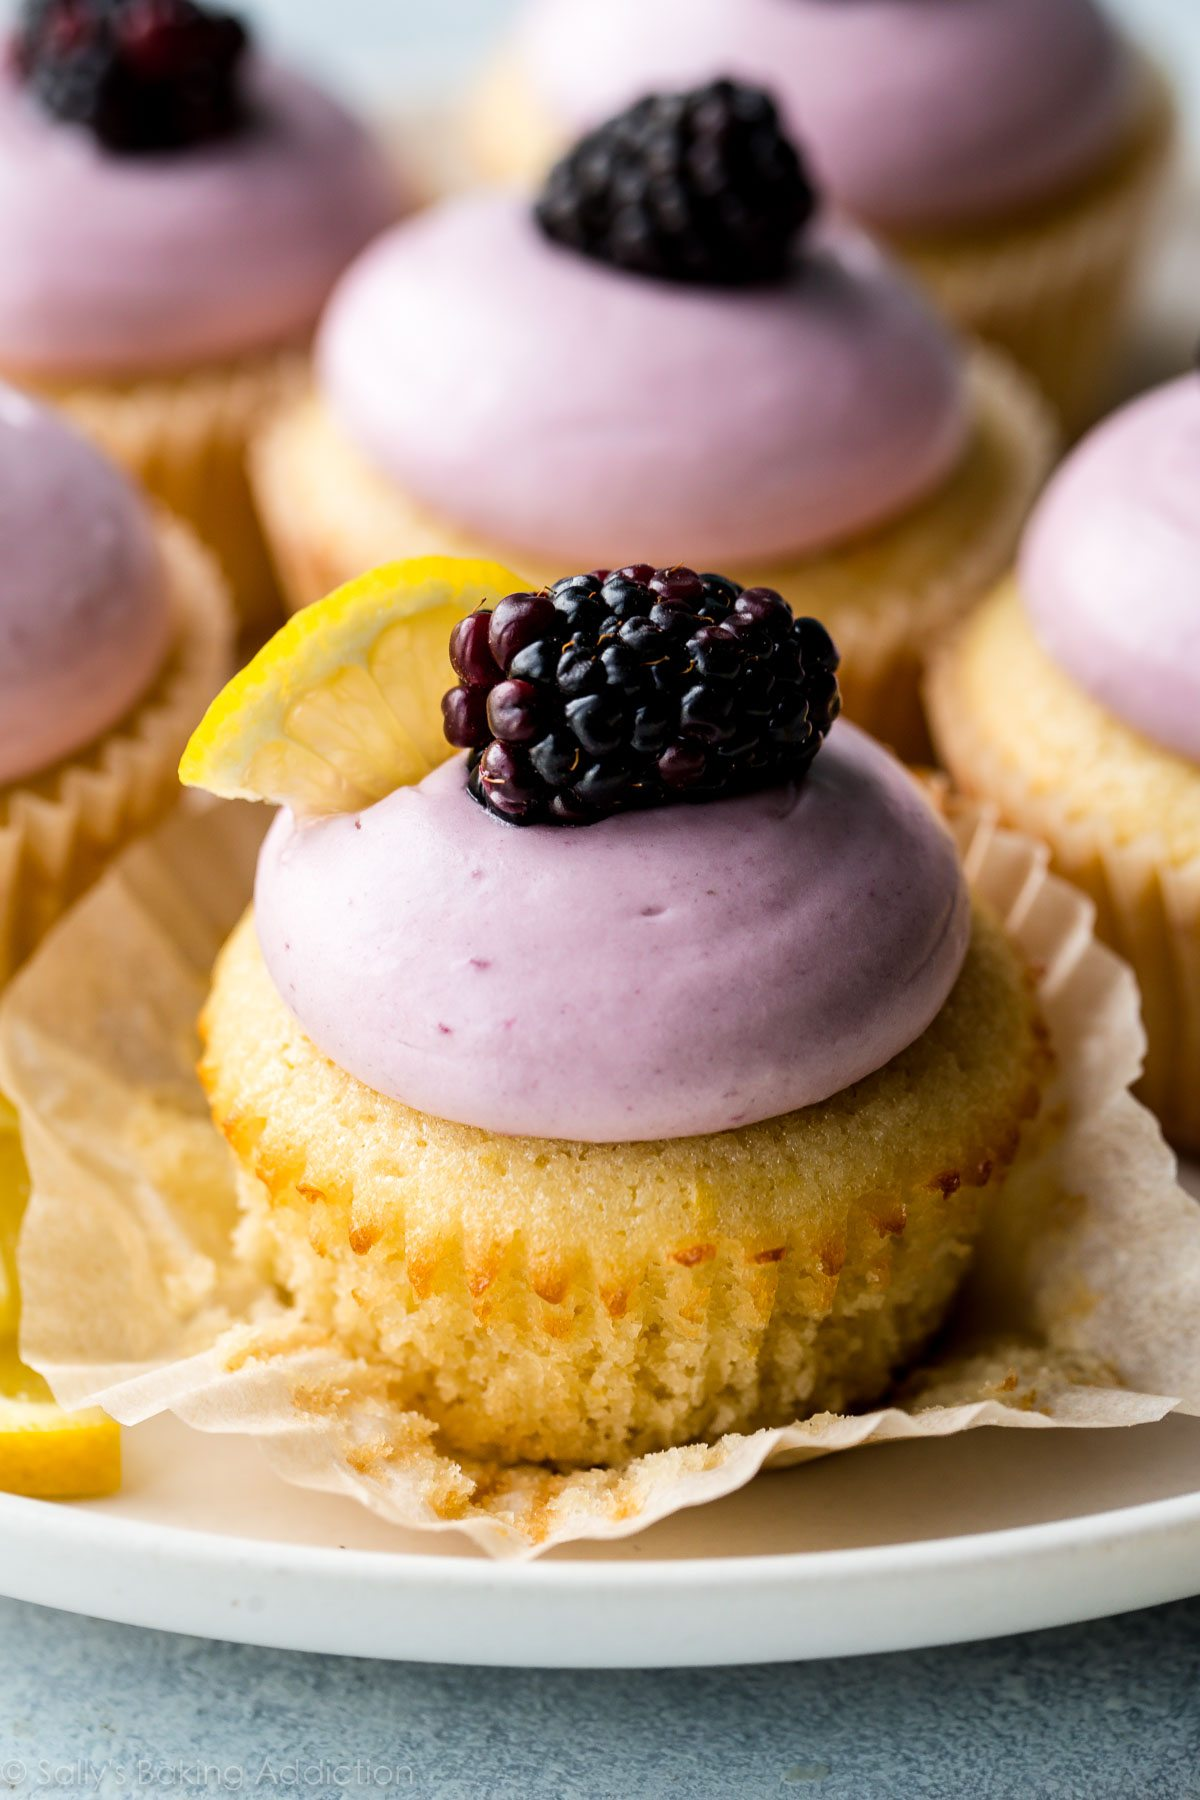 These lemon cupcakes are soft, fluffy, and exploding with lemon flavor! Topped with fresh blackberry cream cheese frosting! So pretty! Recipe on sallysbakingaddiction.com